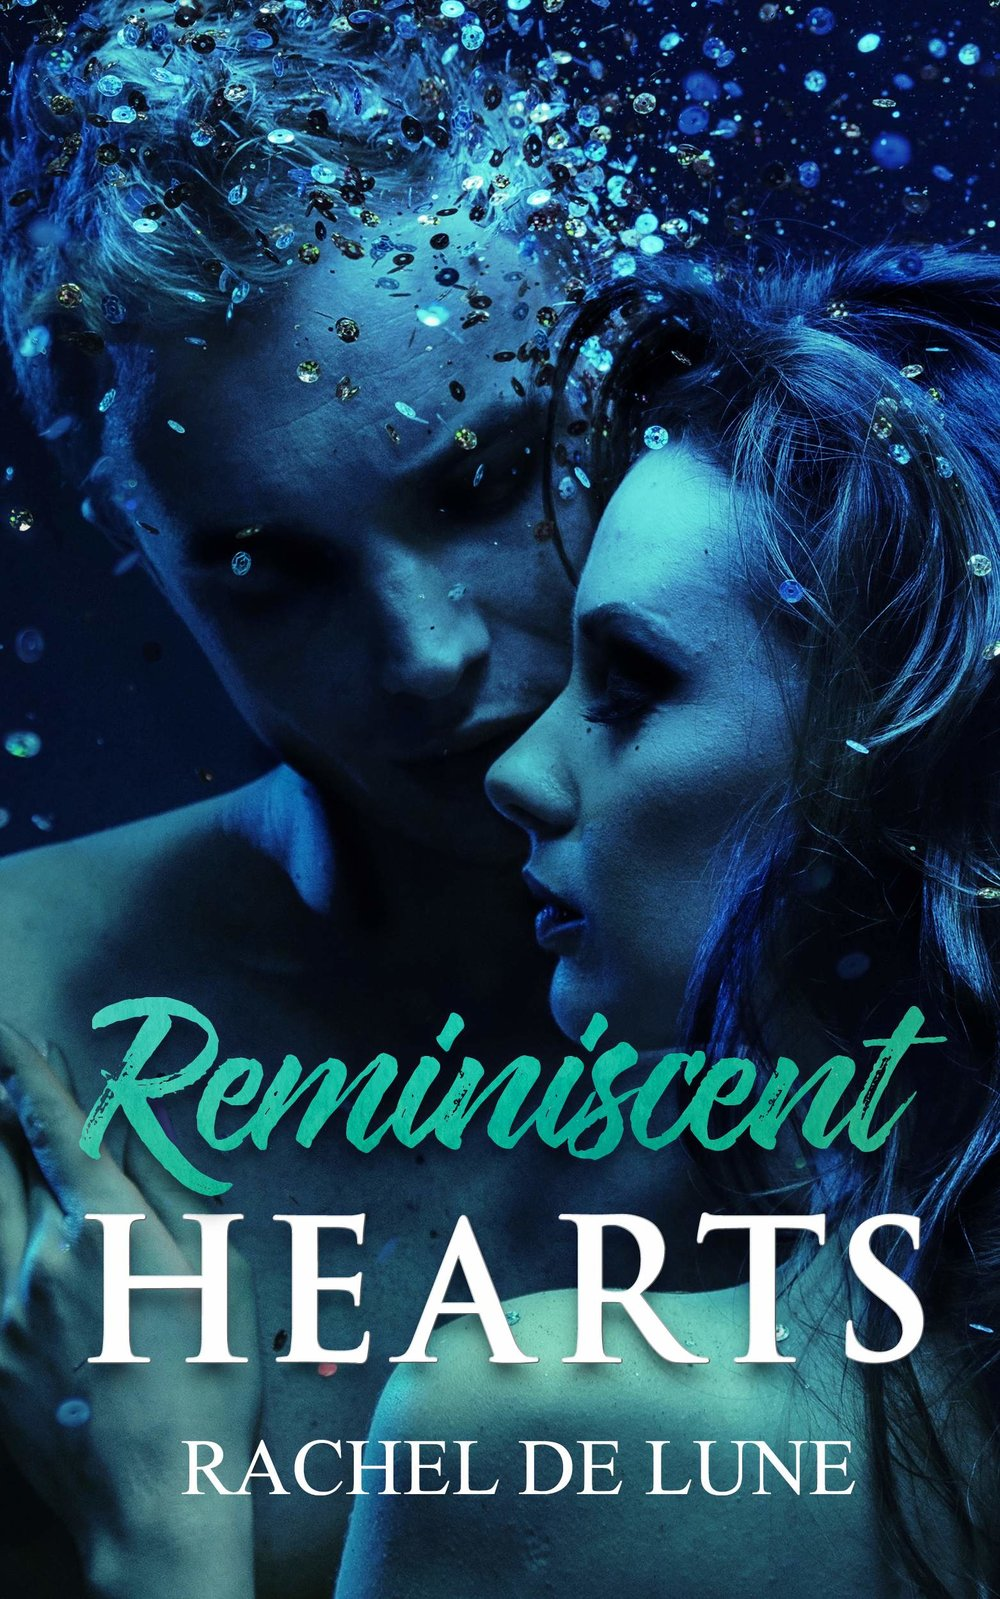 So may bloggers showing their love for Rachel De Lune's new book, Reminiscent Hearts!  A huge thanks goes out to Bare Naked Words for hosting this blog tour!  It is running from the 27th of February through the 3rd of March. Keep an eye on the Troll River blog tour for all the updates!